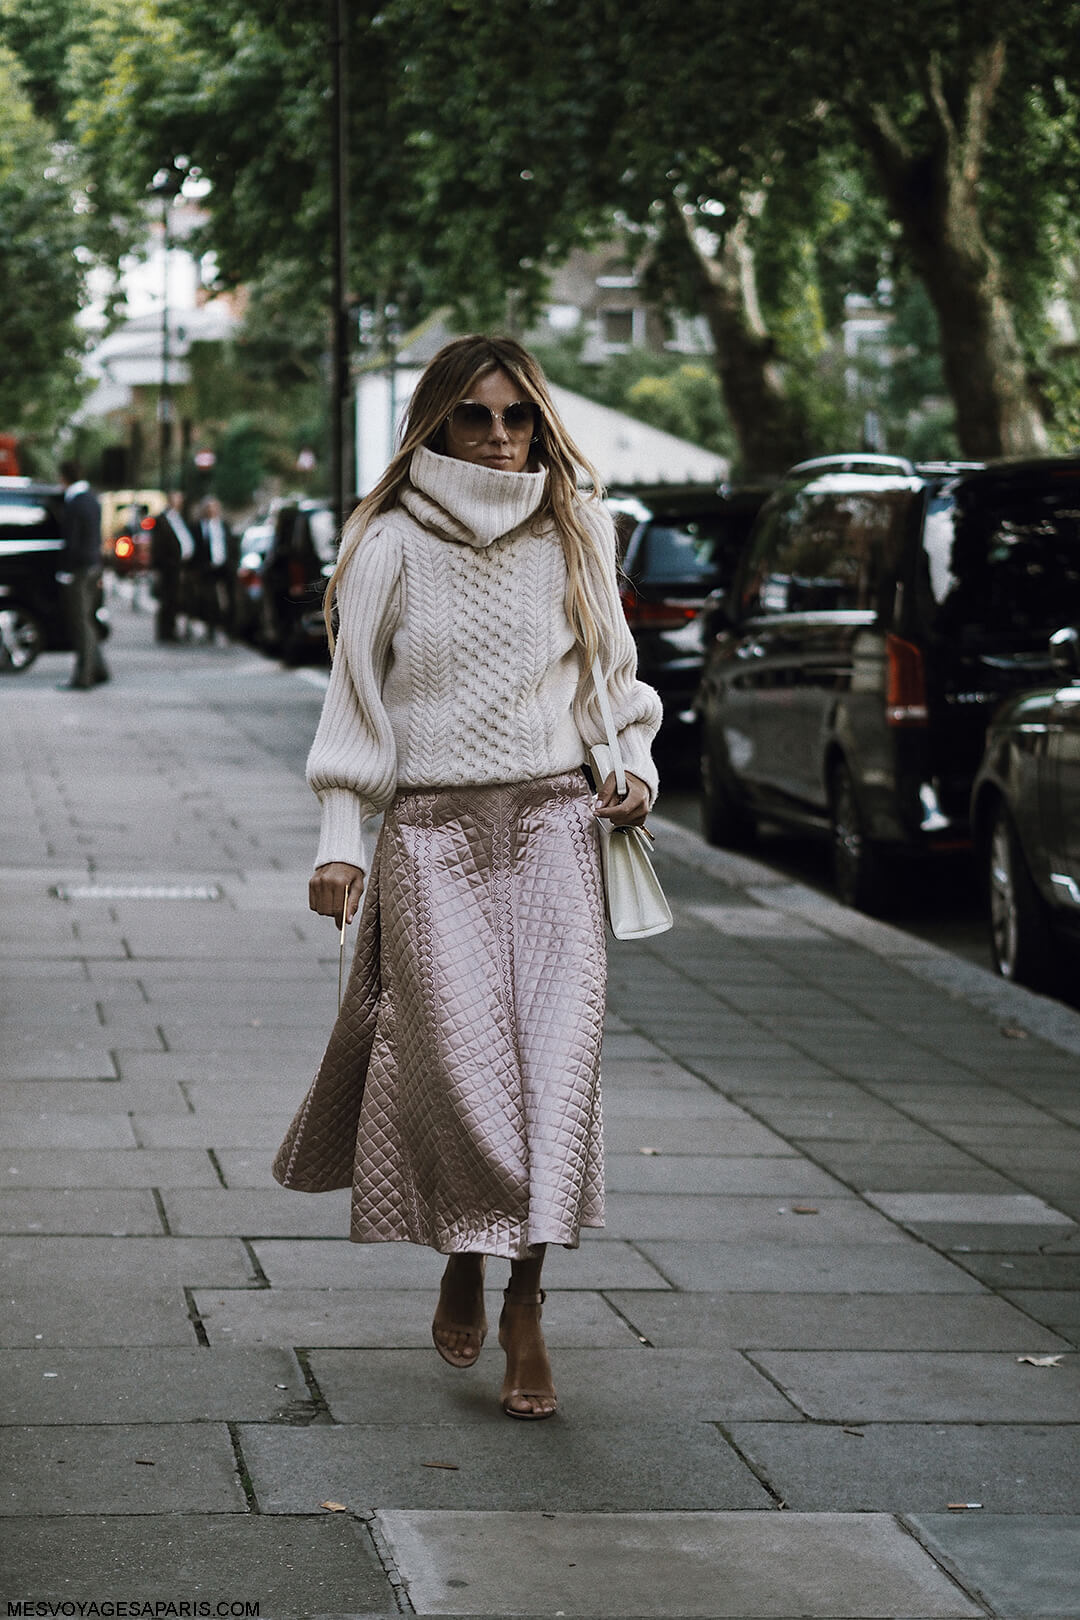 LFW-Street-Style-September-2017-london-fashion-week-Erica-Pelosini-pink-skirt